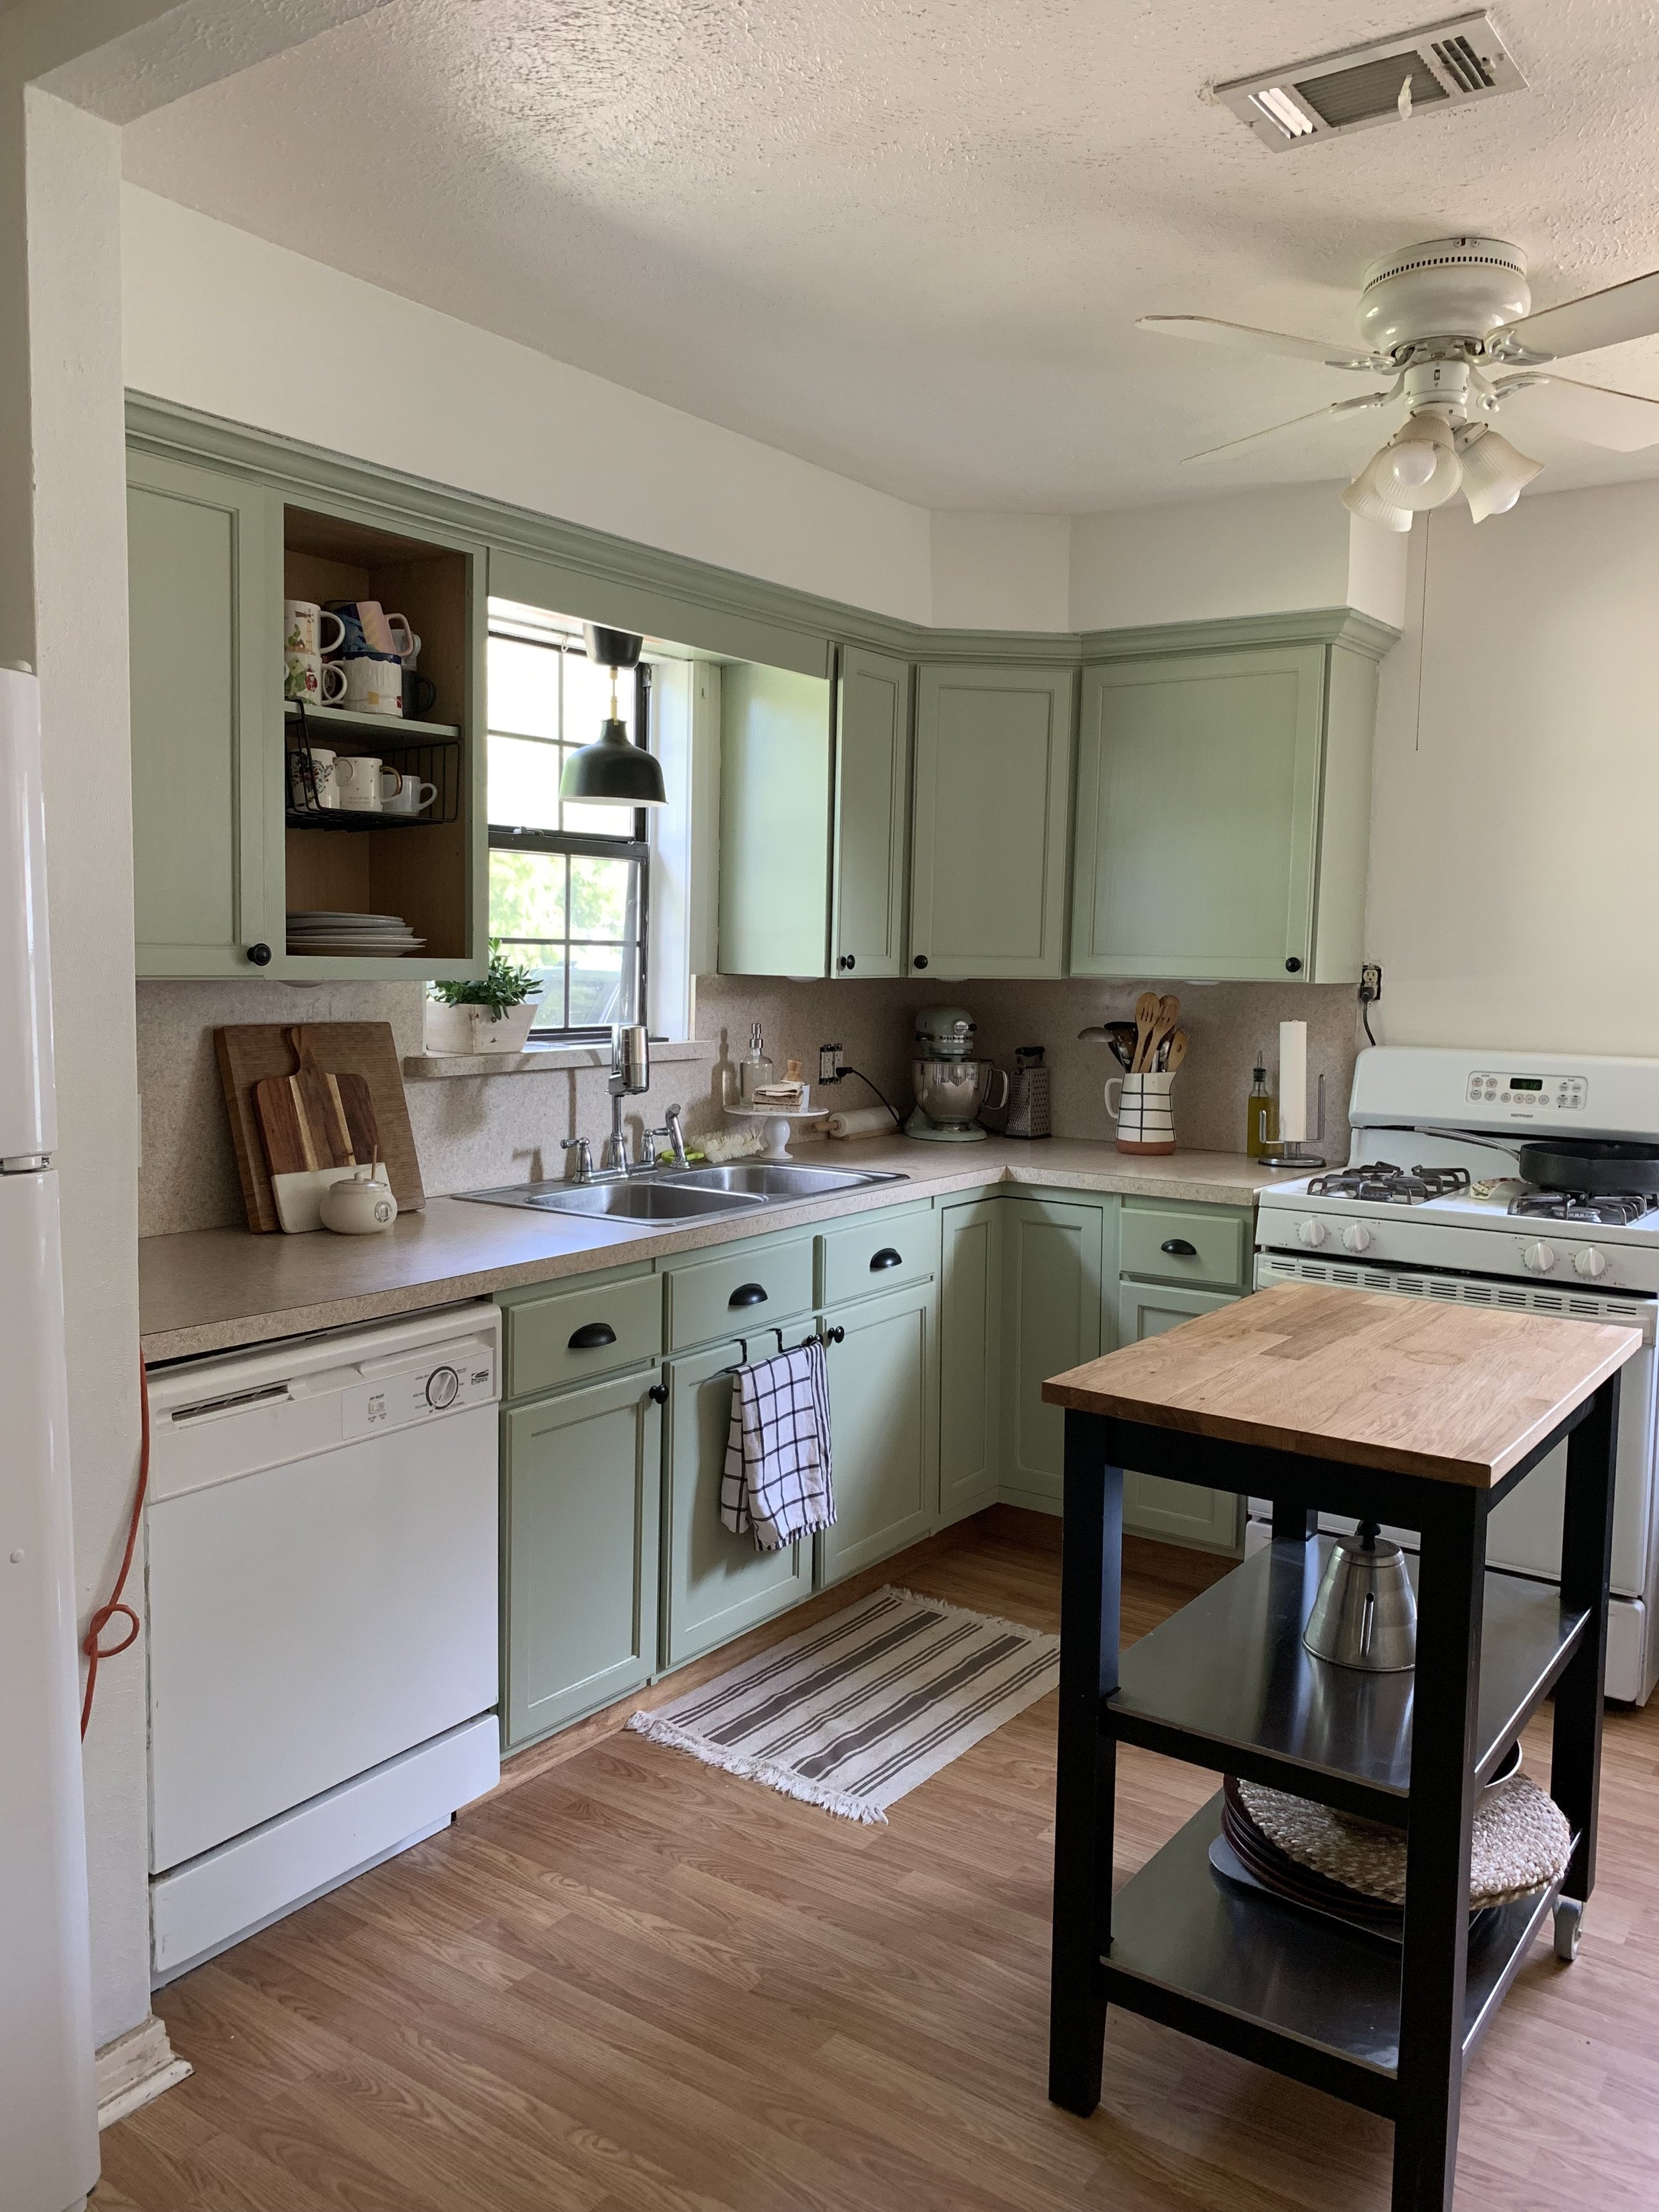 Did I cry when these walls were finally white? 100%. I have loved the cabinet color from the beginning, but seeing it against the white just brought another level of joy to this kitchen.